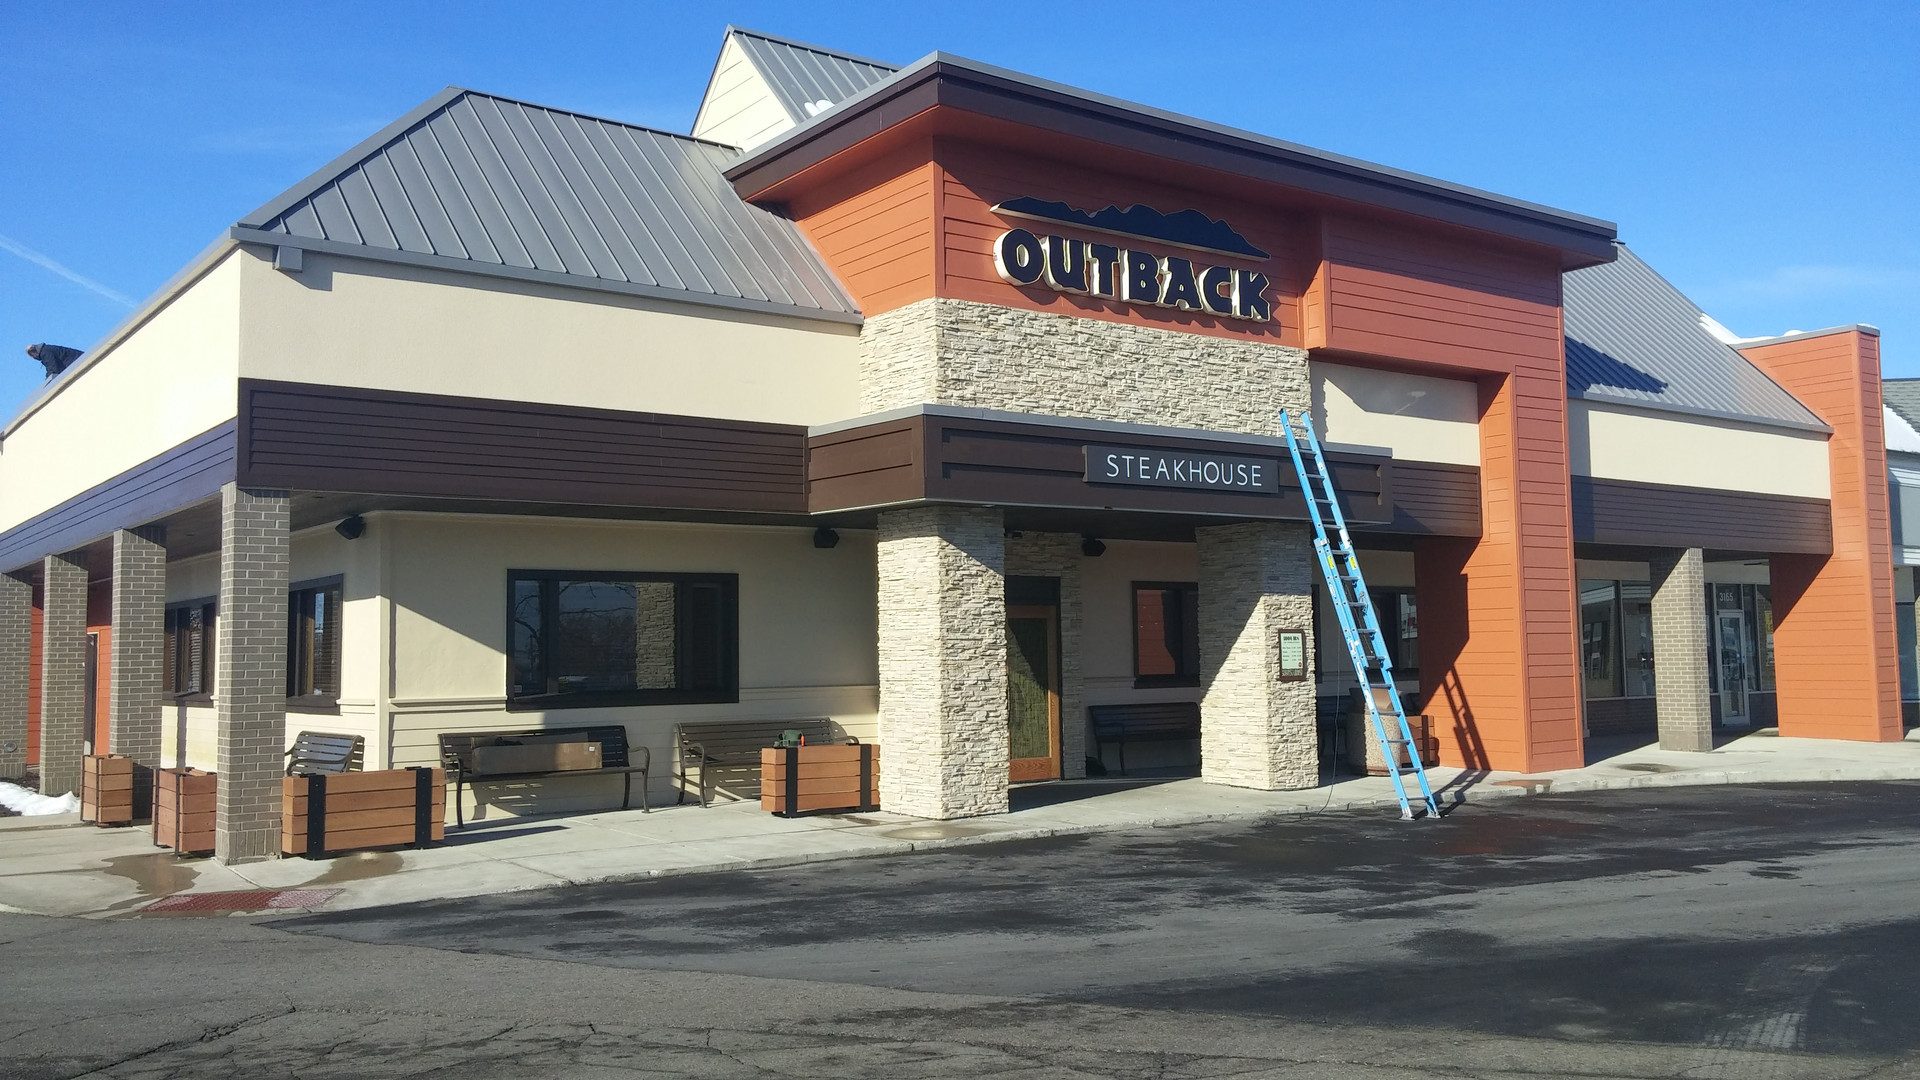 Exterior and Interior painting and staining at an Outback Stakehouse in Ann Arbor, MI for Wolverine Building Group.